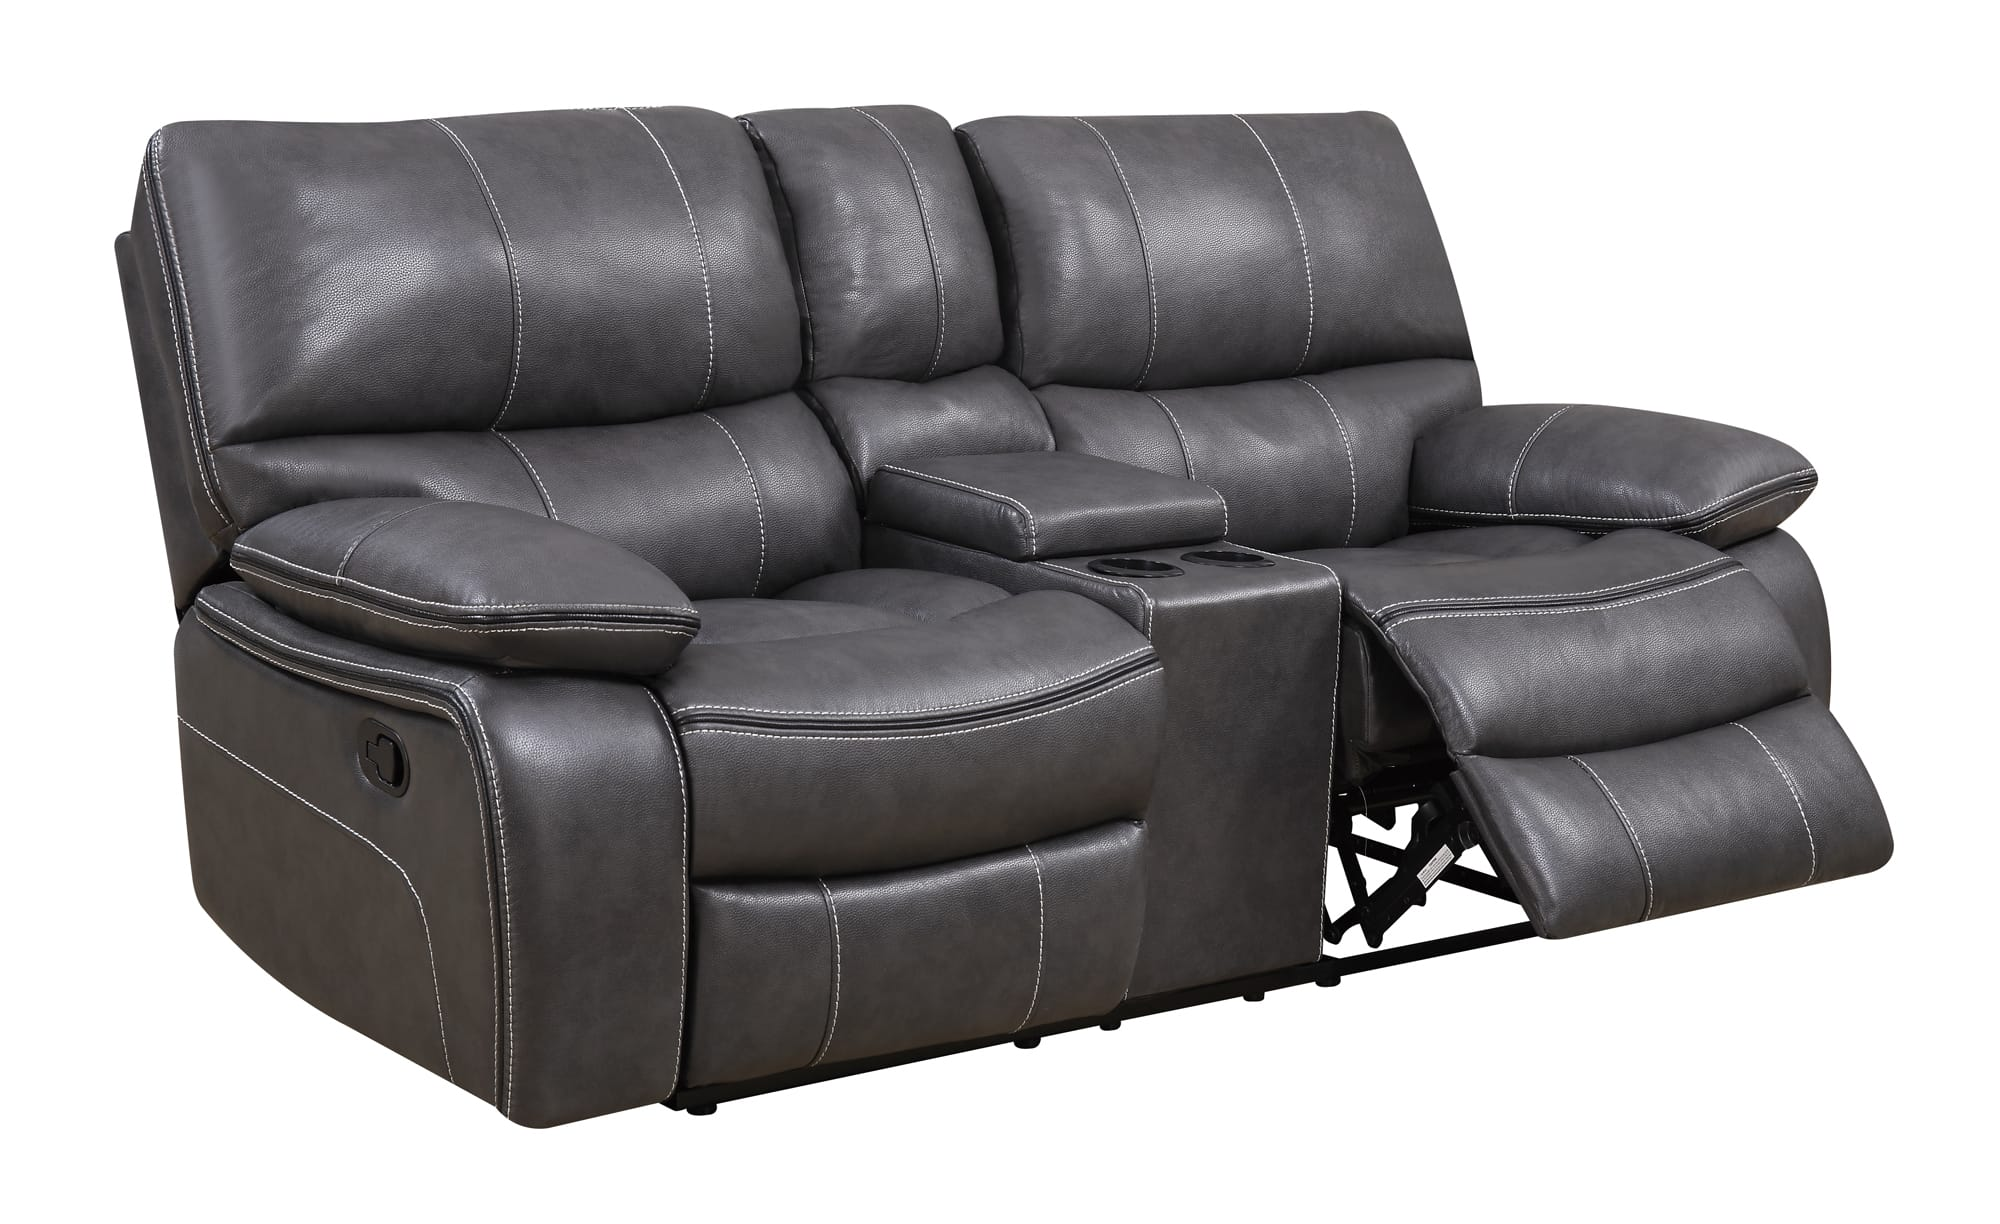 U0040 grey black leather console reclining loveseat by global furniture Leather reclining sofa loveseat